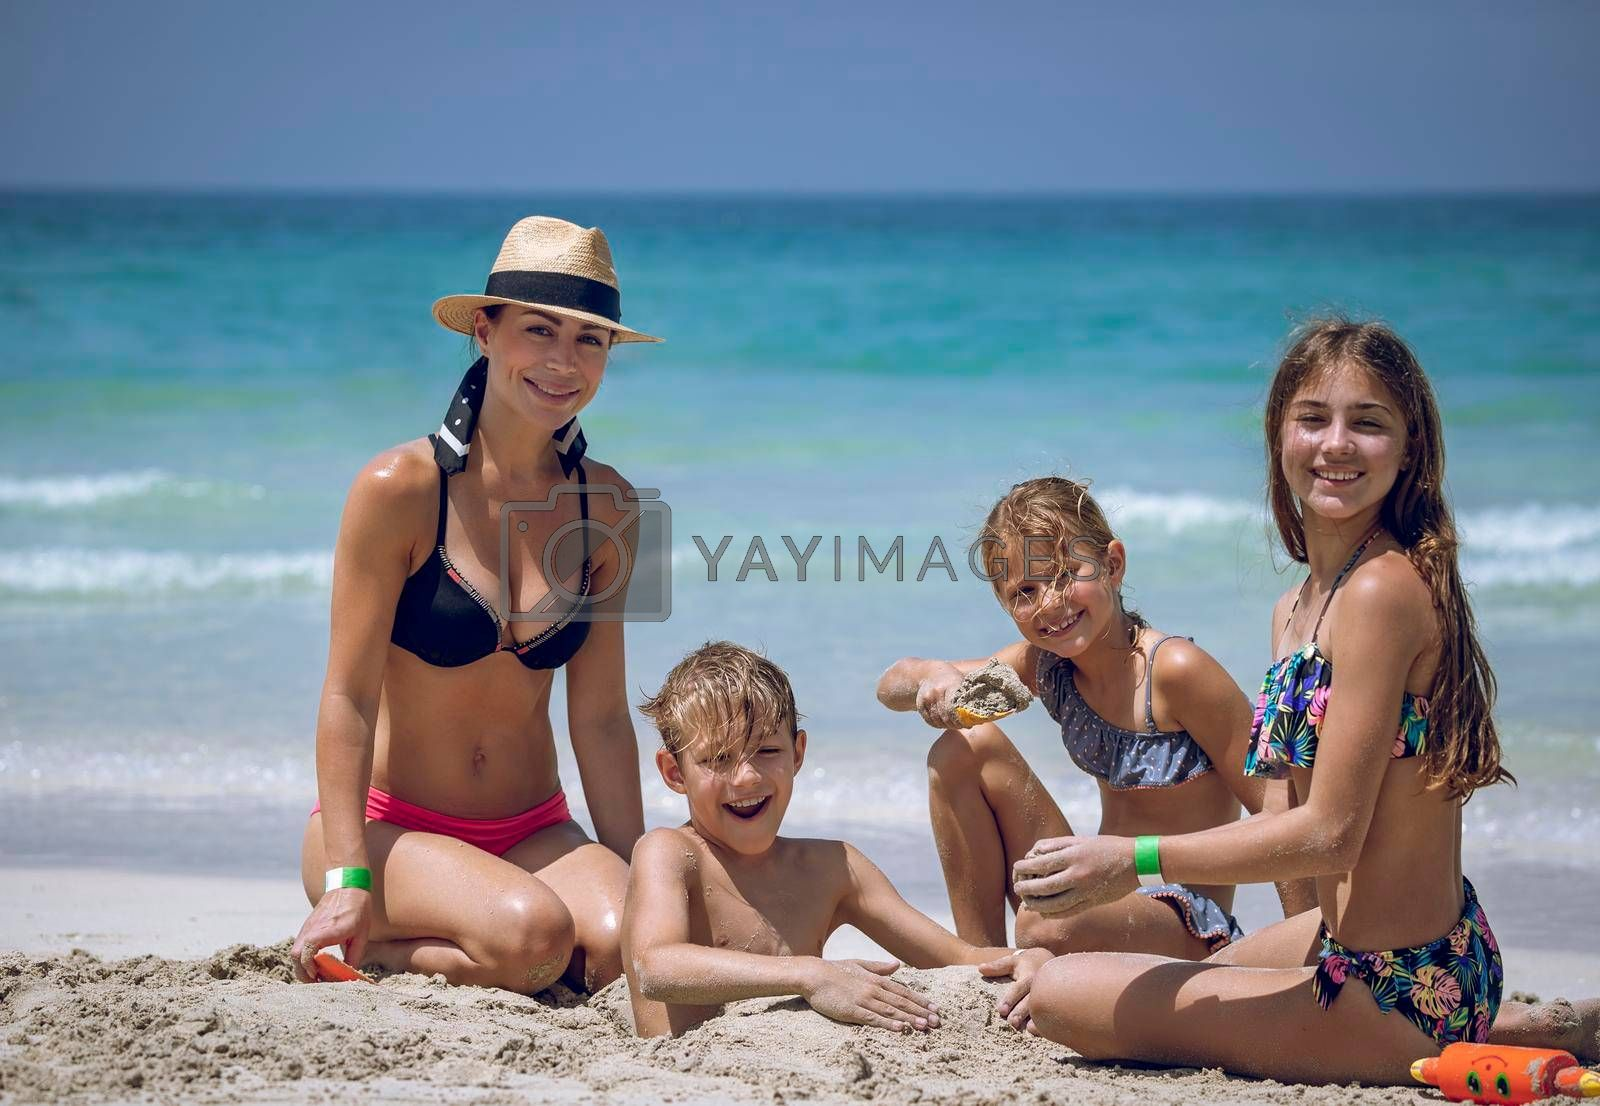 Portrait of Big Happy Family. Beautiful Mother with Three Kids Having Fun on the Beach. Playing Games in Sand. Spending Summer Holidays Together.